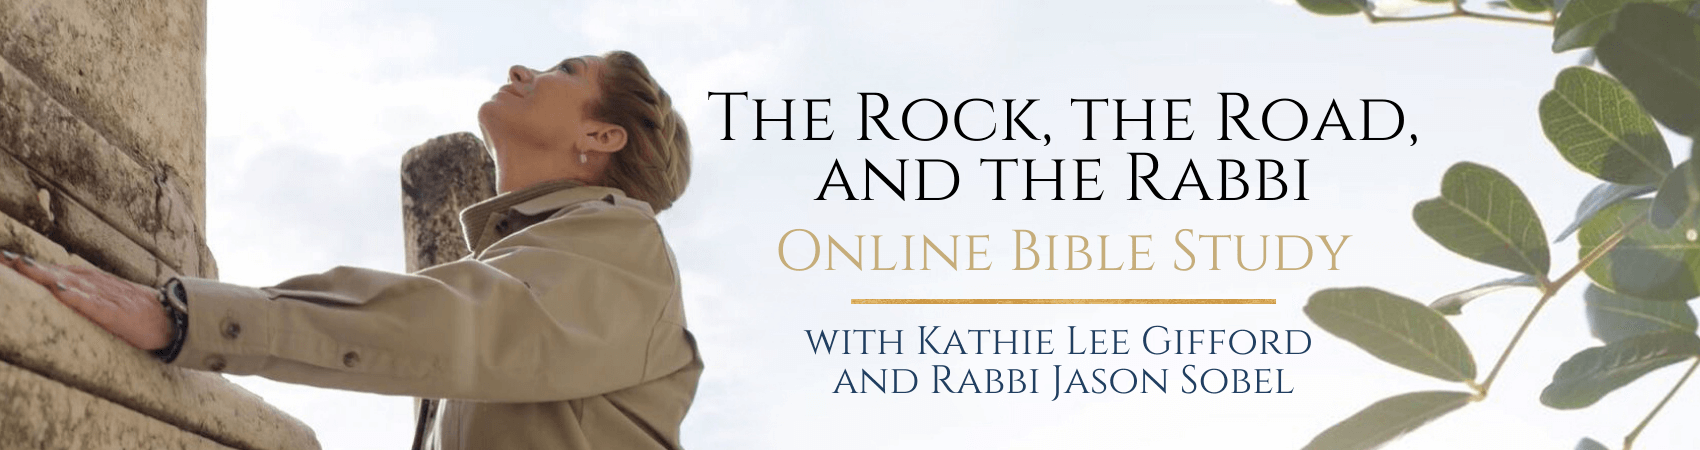 The Rock, the Road, and the Rabbi Online Bible Study